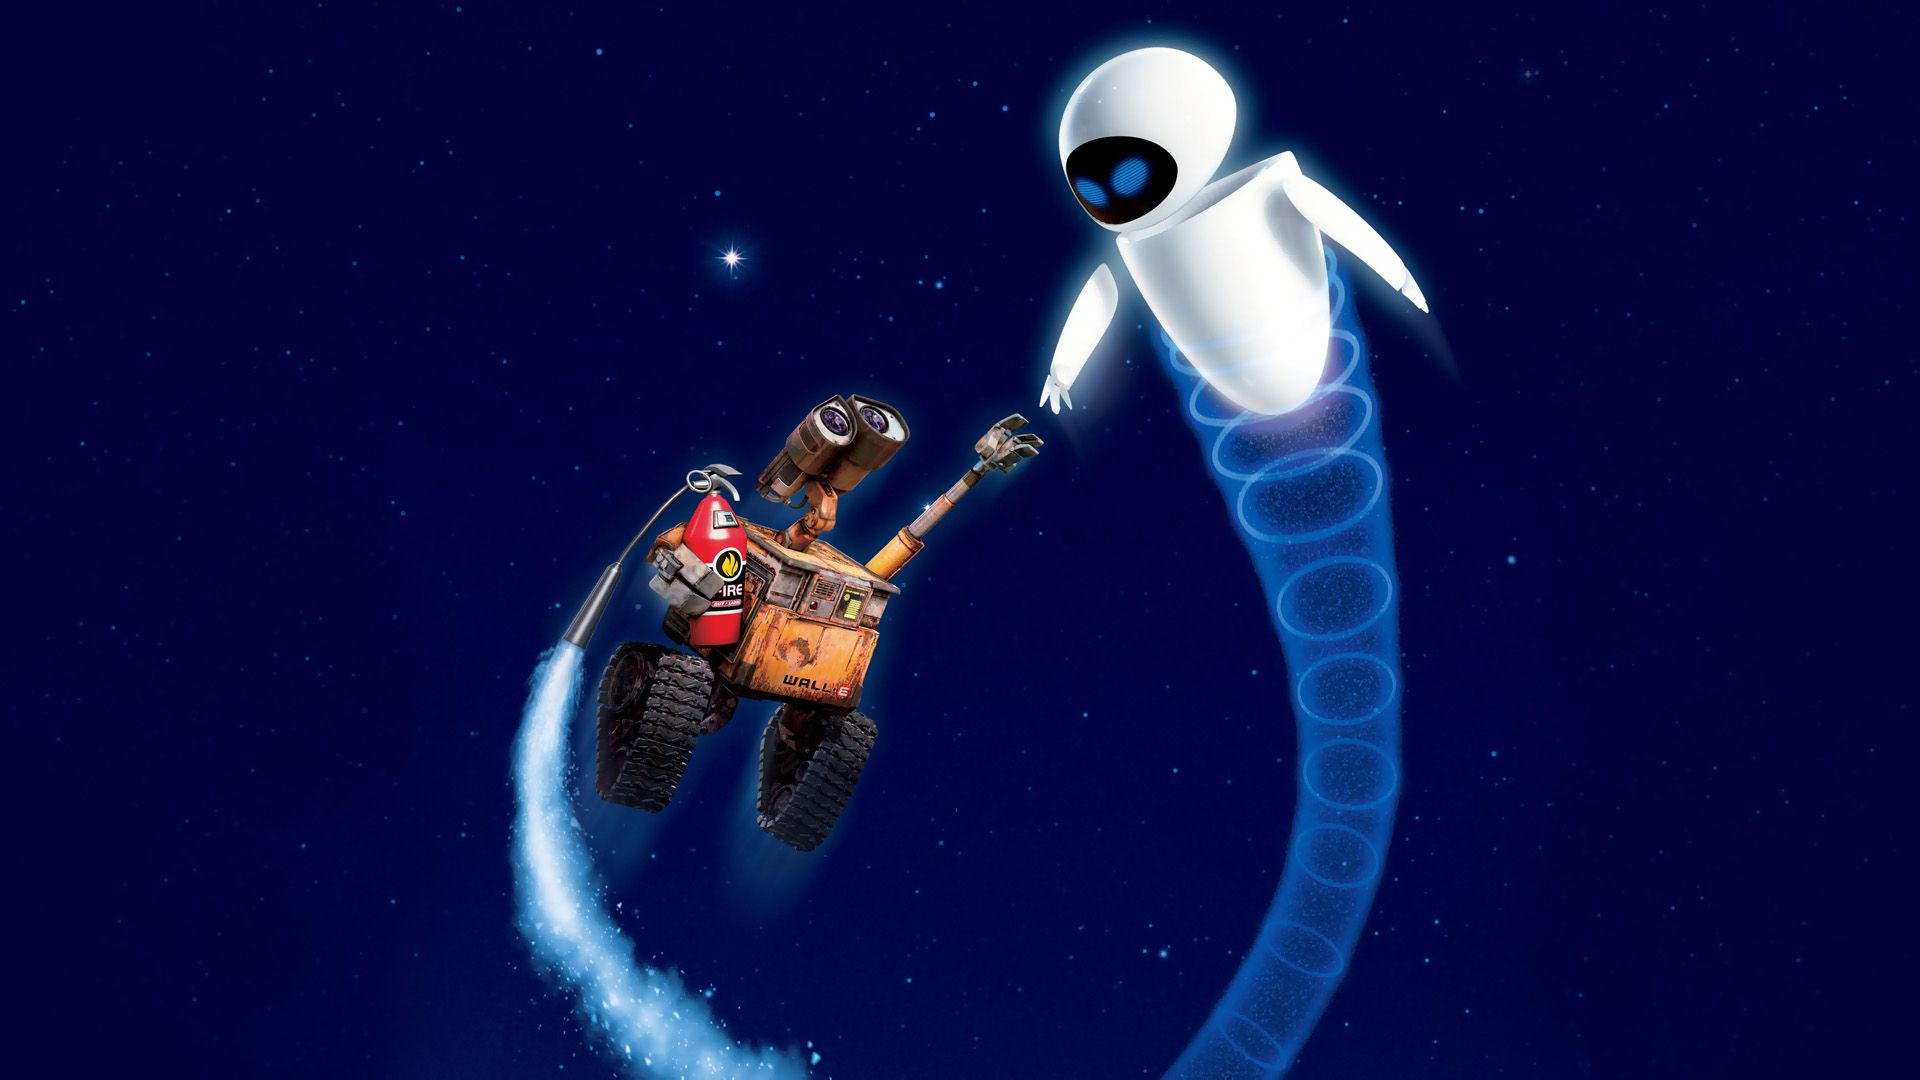 wall e and eve images hd